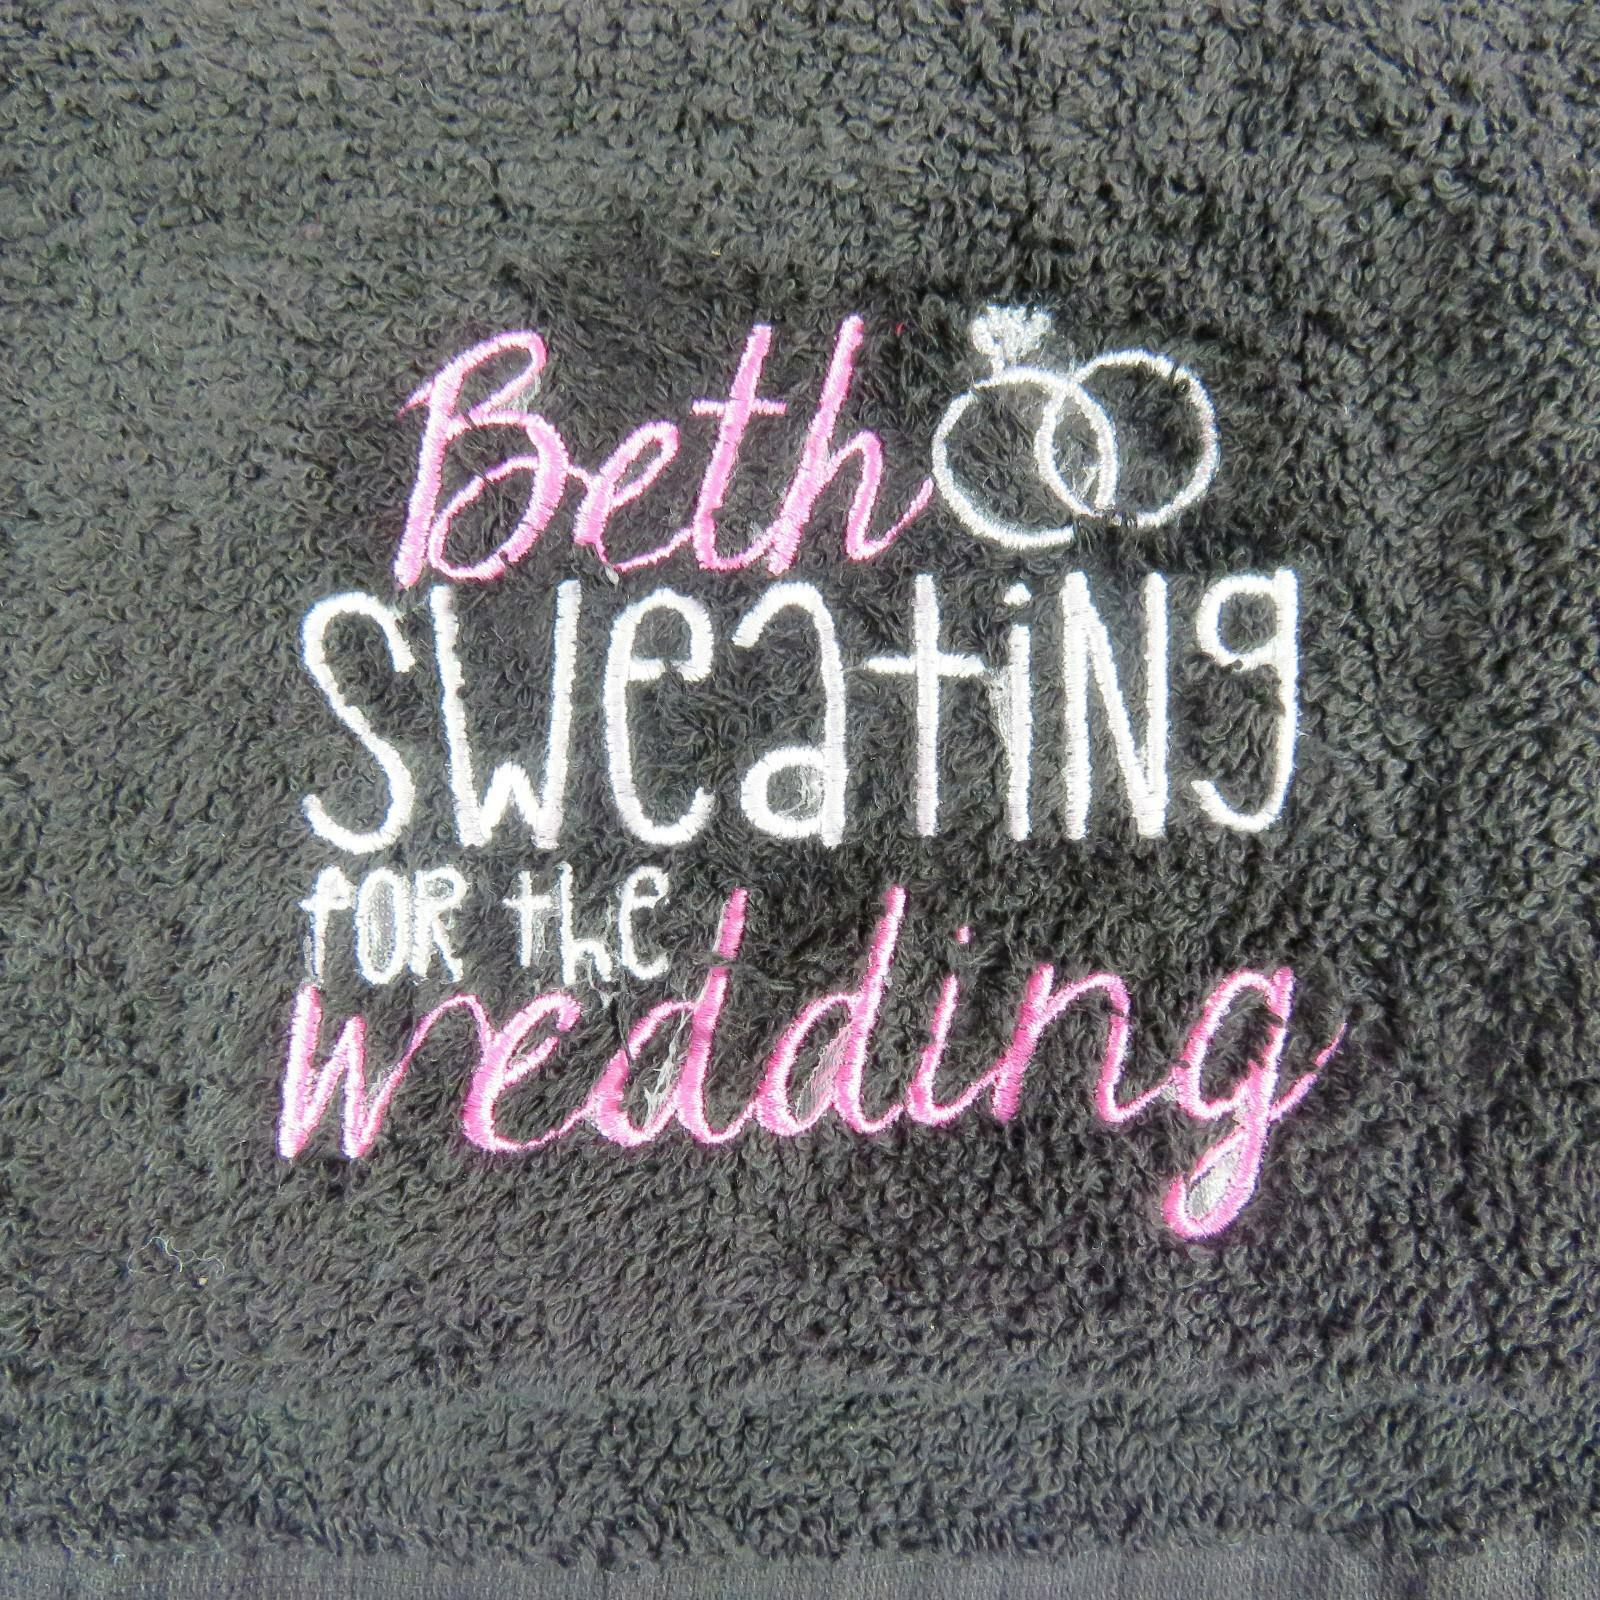 Personalised Gym Towel Embroidered Sweating for the Wedding Engagement Gift